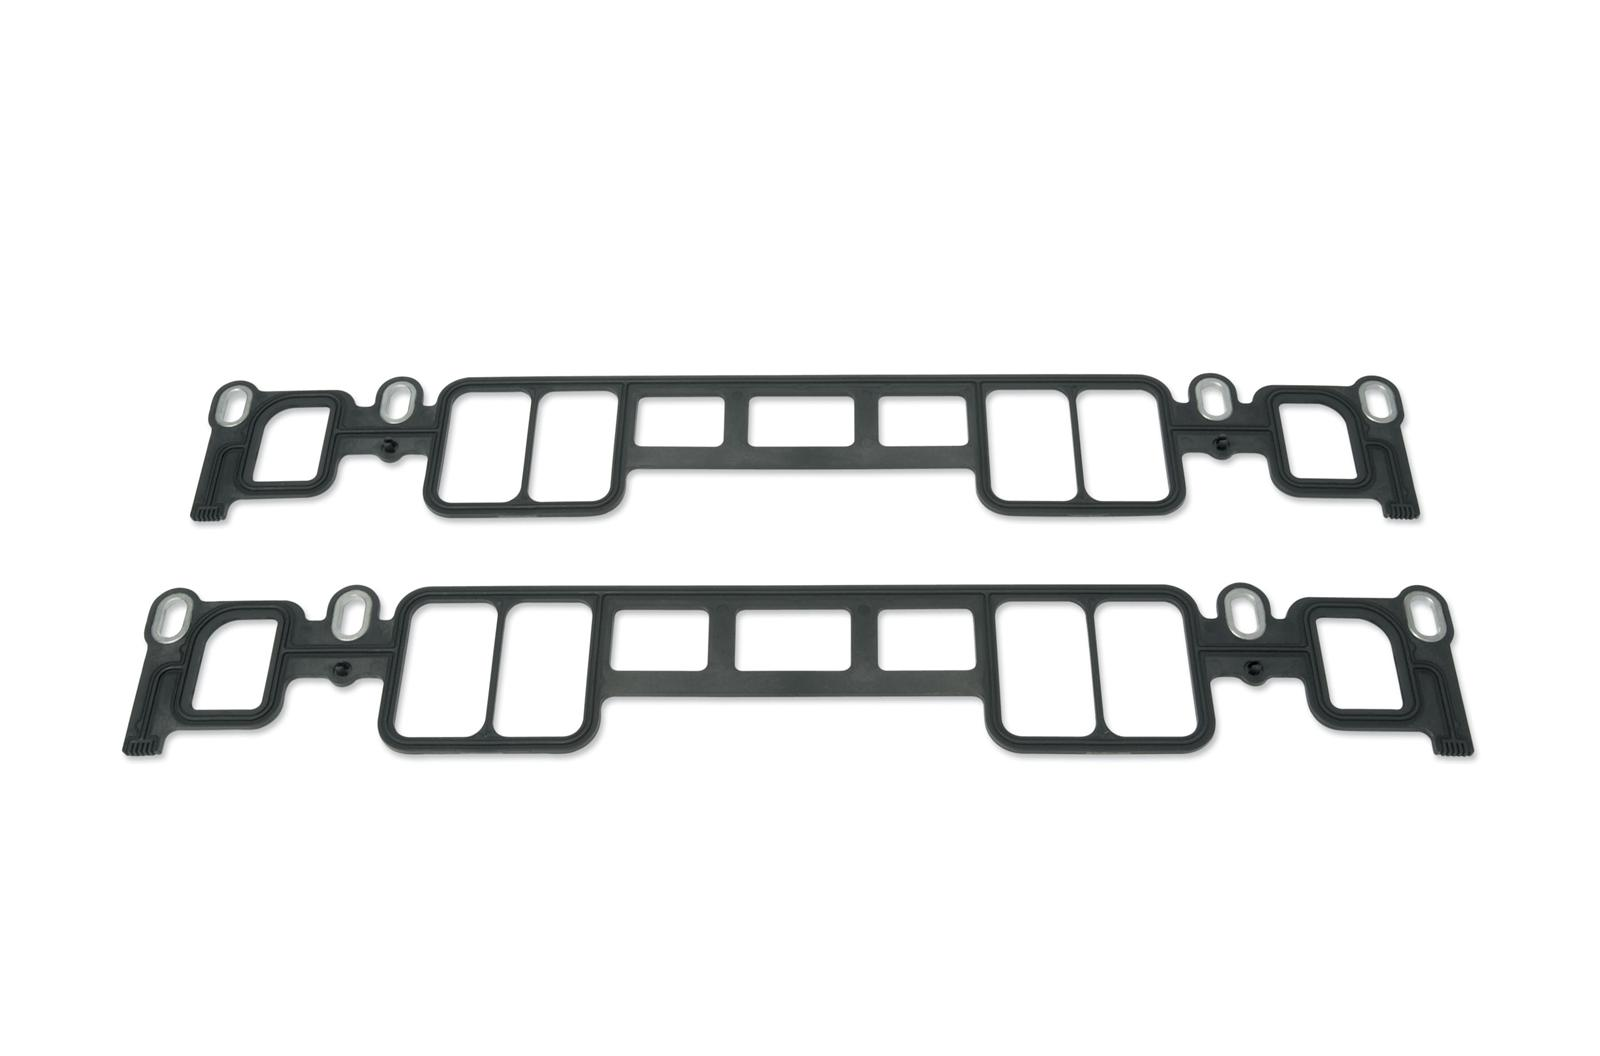 Gm Gaskets Manifold Intake Composite Stock Port 060